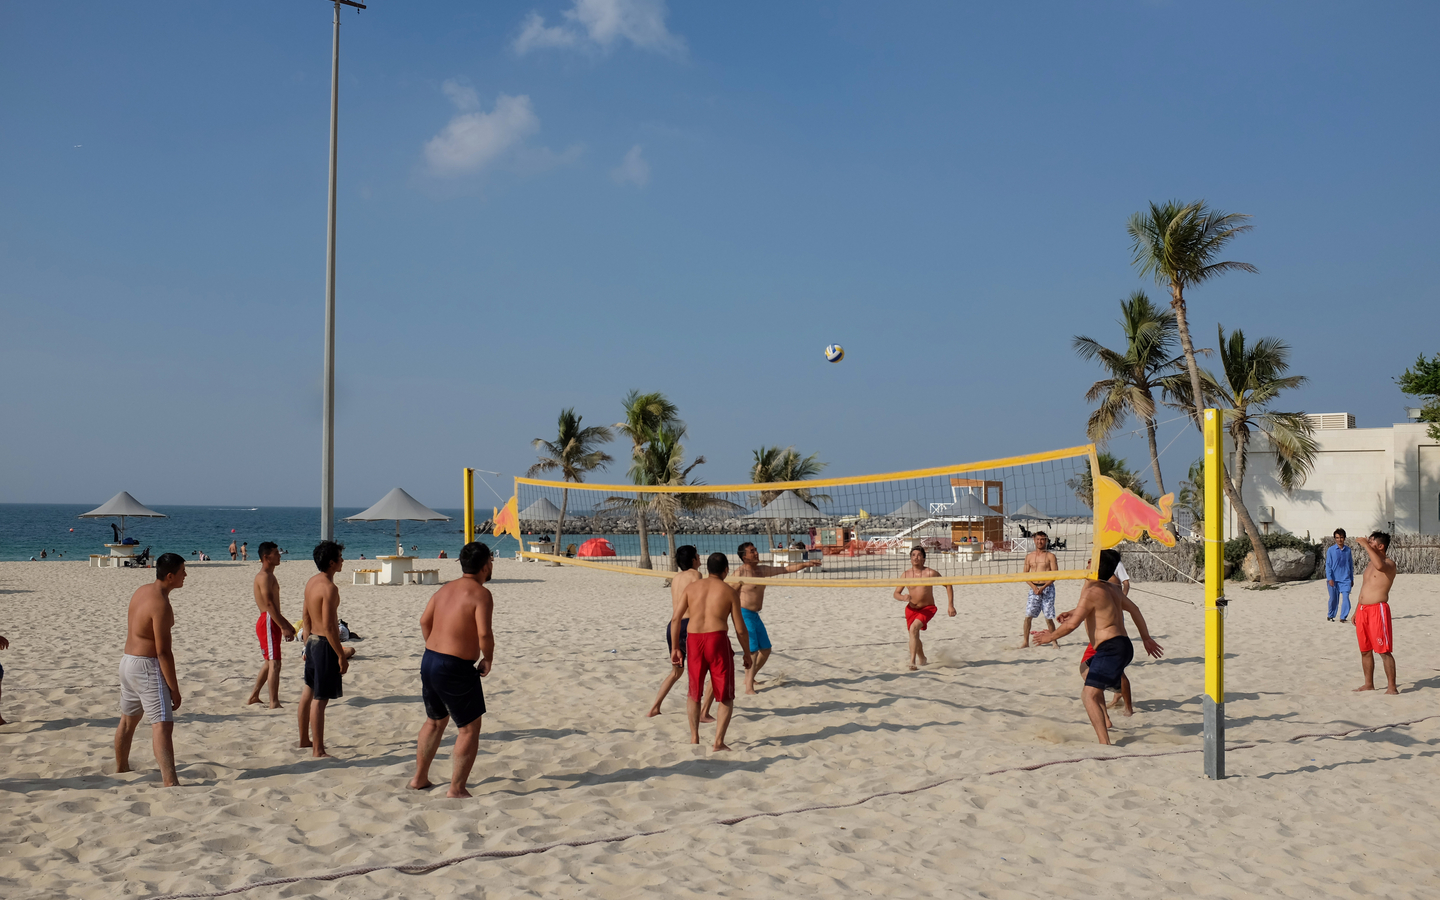 You can play Volly ball with a bunch of friends at Al Mamzar beach